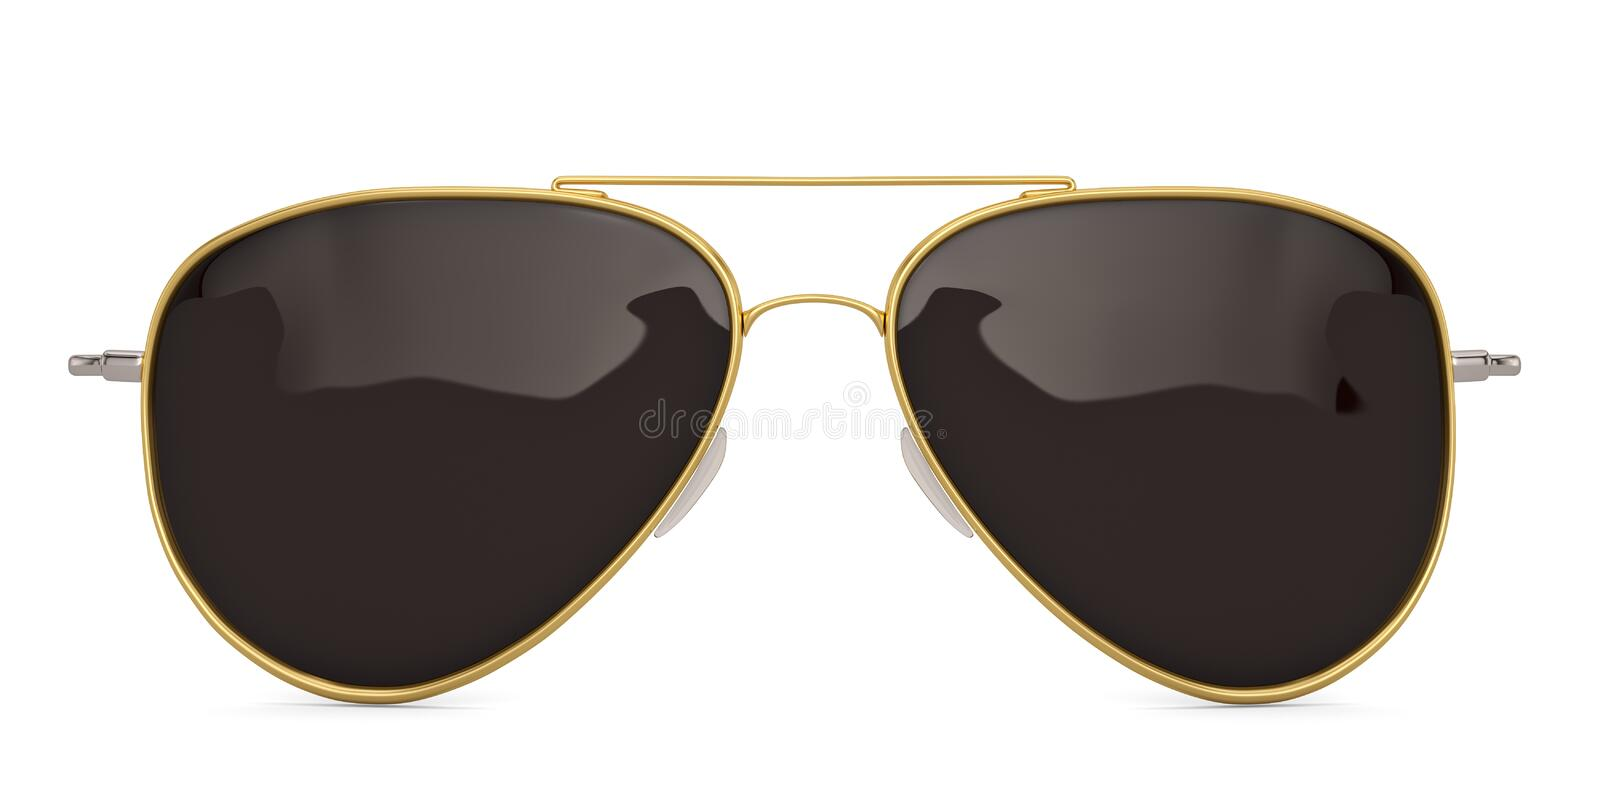 Sunglasses isolated on white background 3D illustration. Sunglasses isolated on white background 3D illustration royalty free illustration